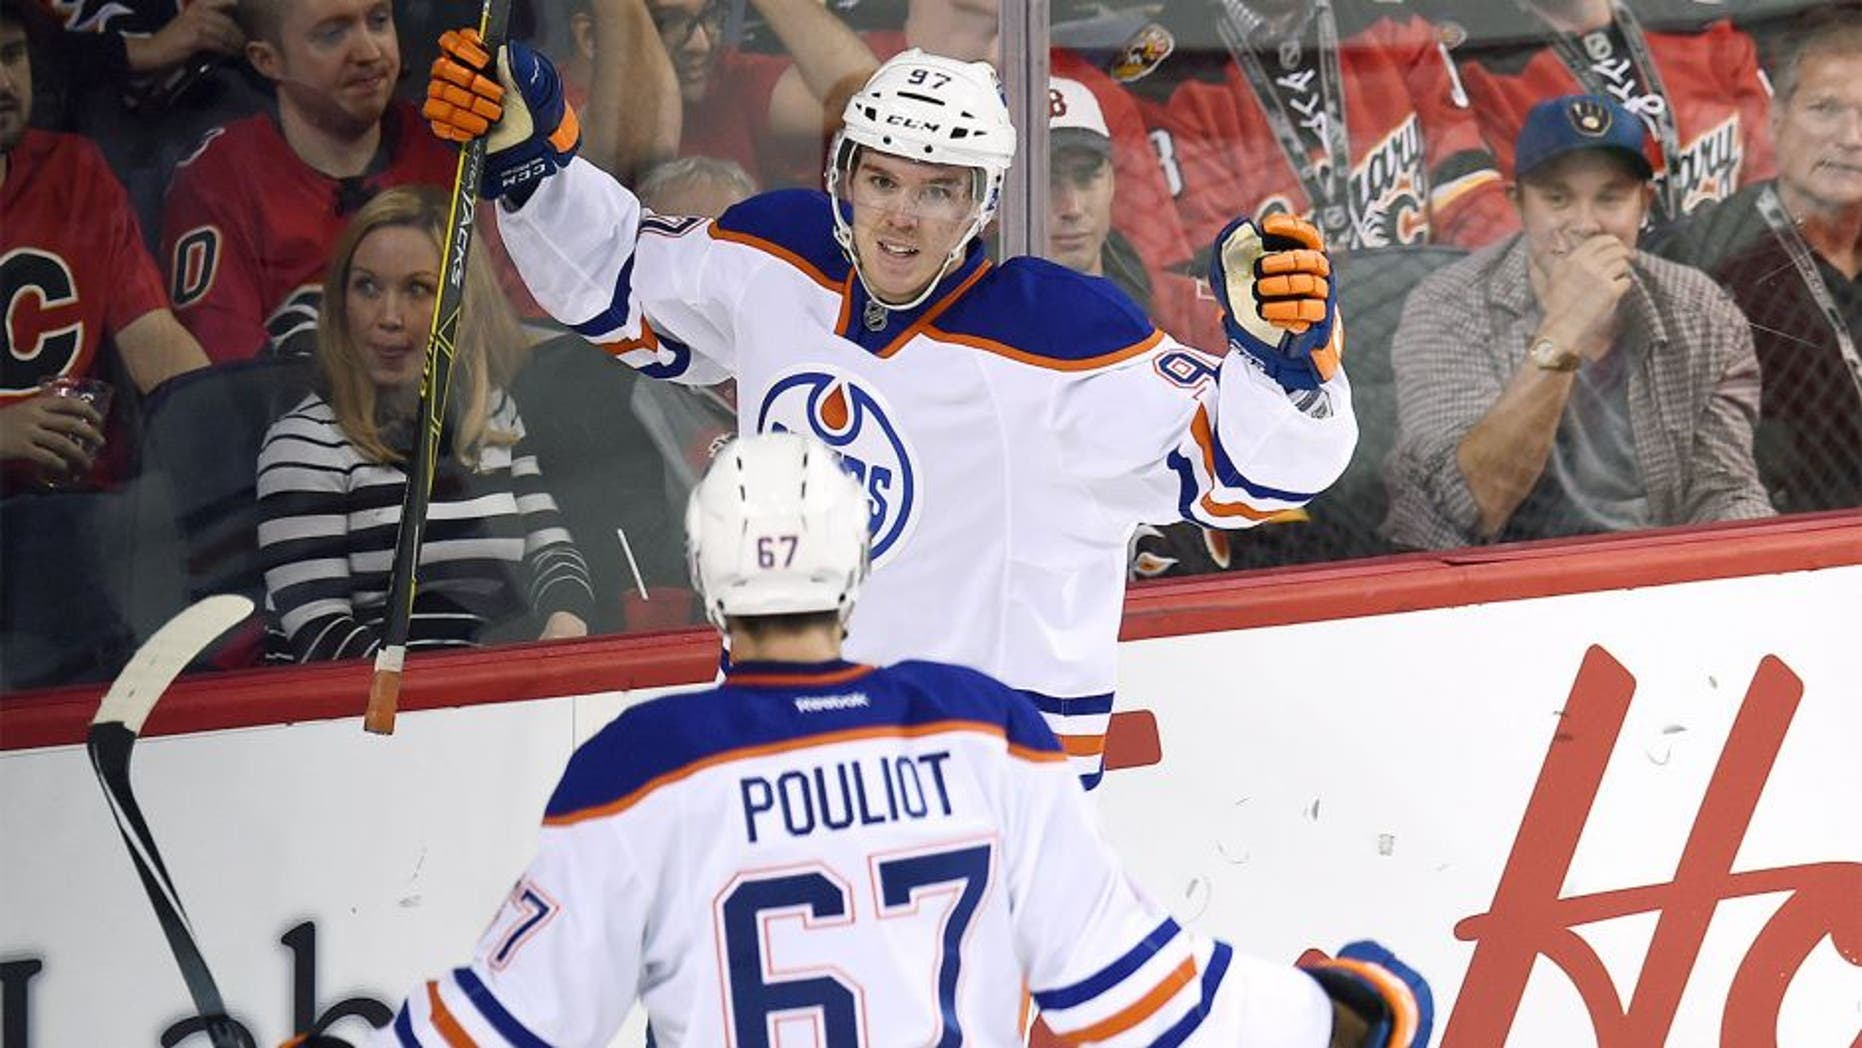 Oct 17, 2015; Calgary, Alberta, CAN; Edmonton Oilers center Connor McDavid (97) celebrates his second period goal against the Calgary Flames at Scotiabank Saddledome. Mandatory Credit: Candice Ward-USA TODAY Sports